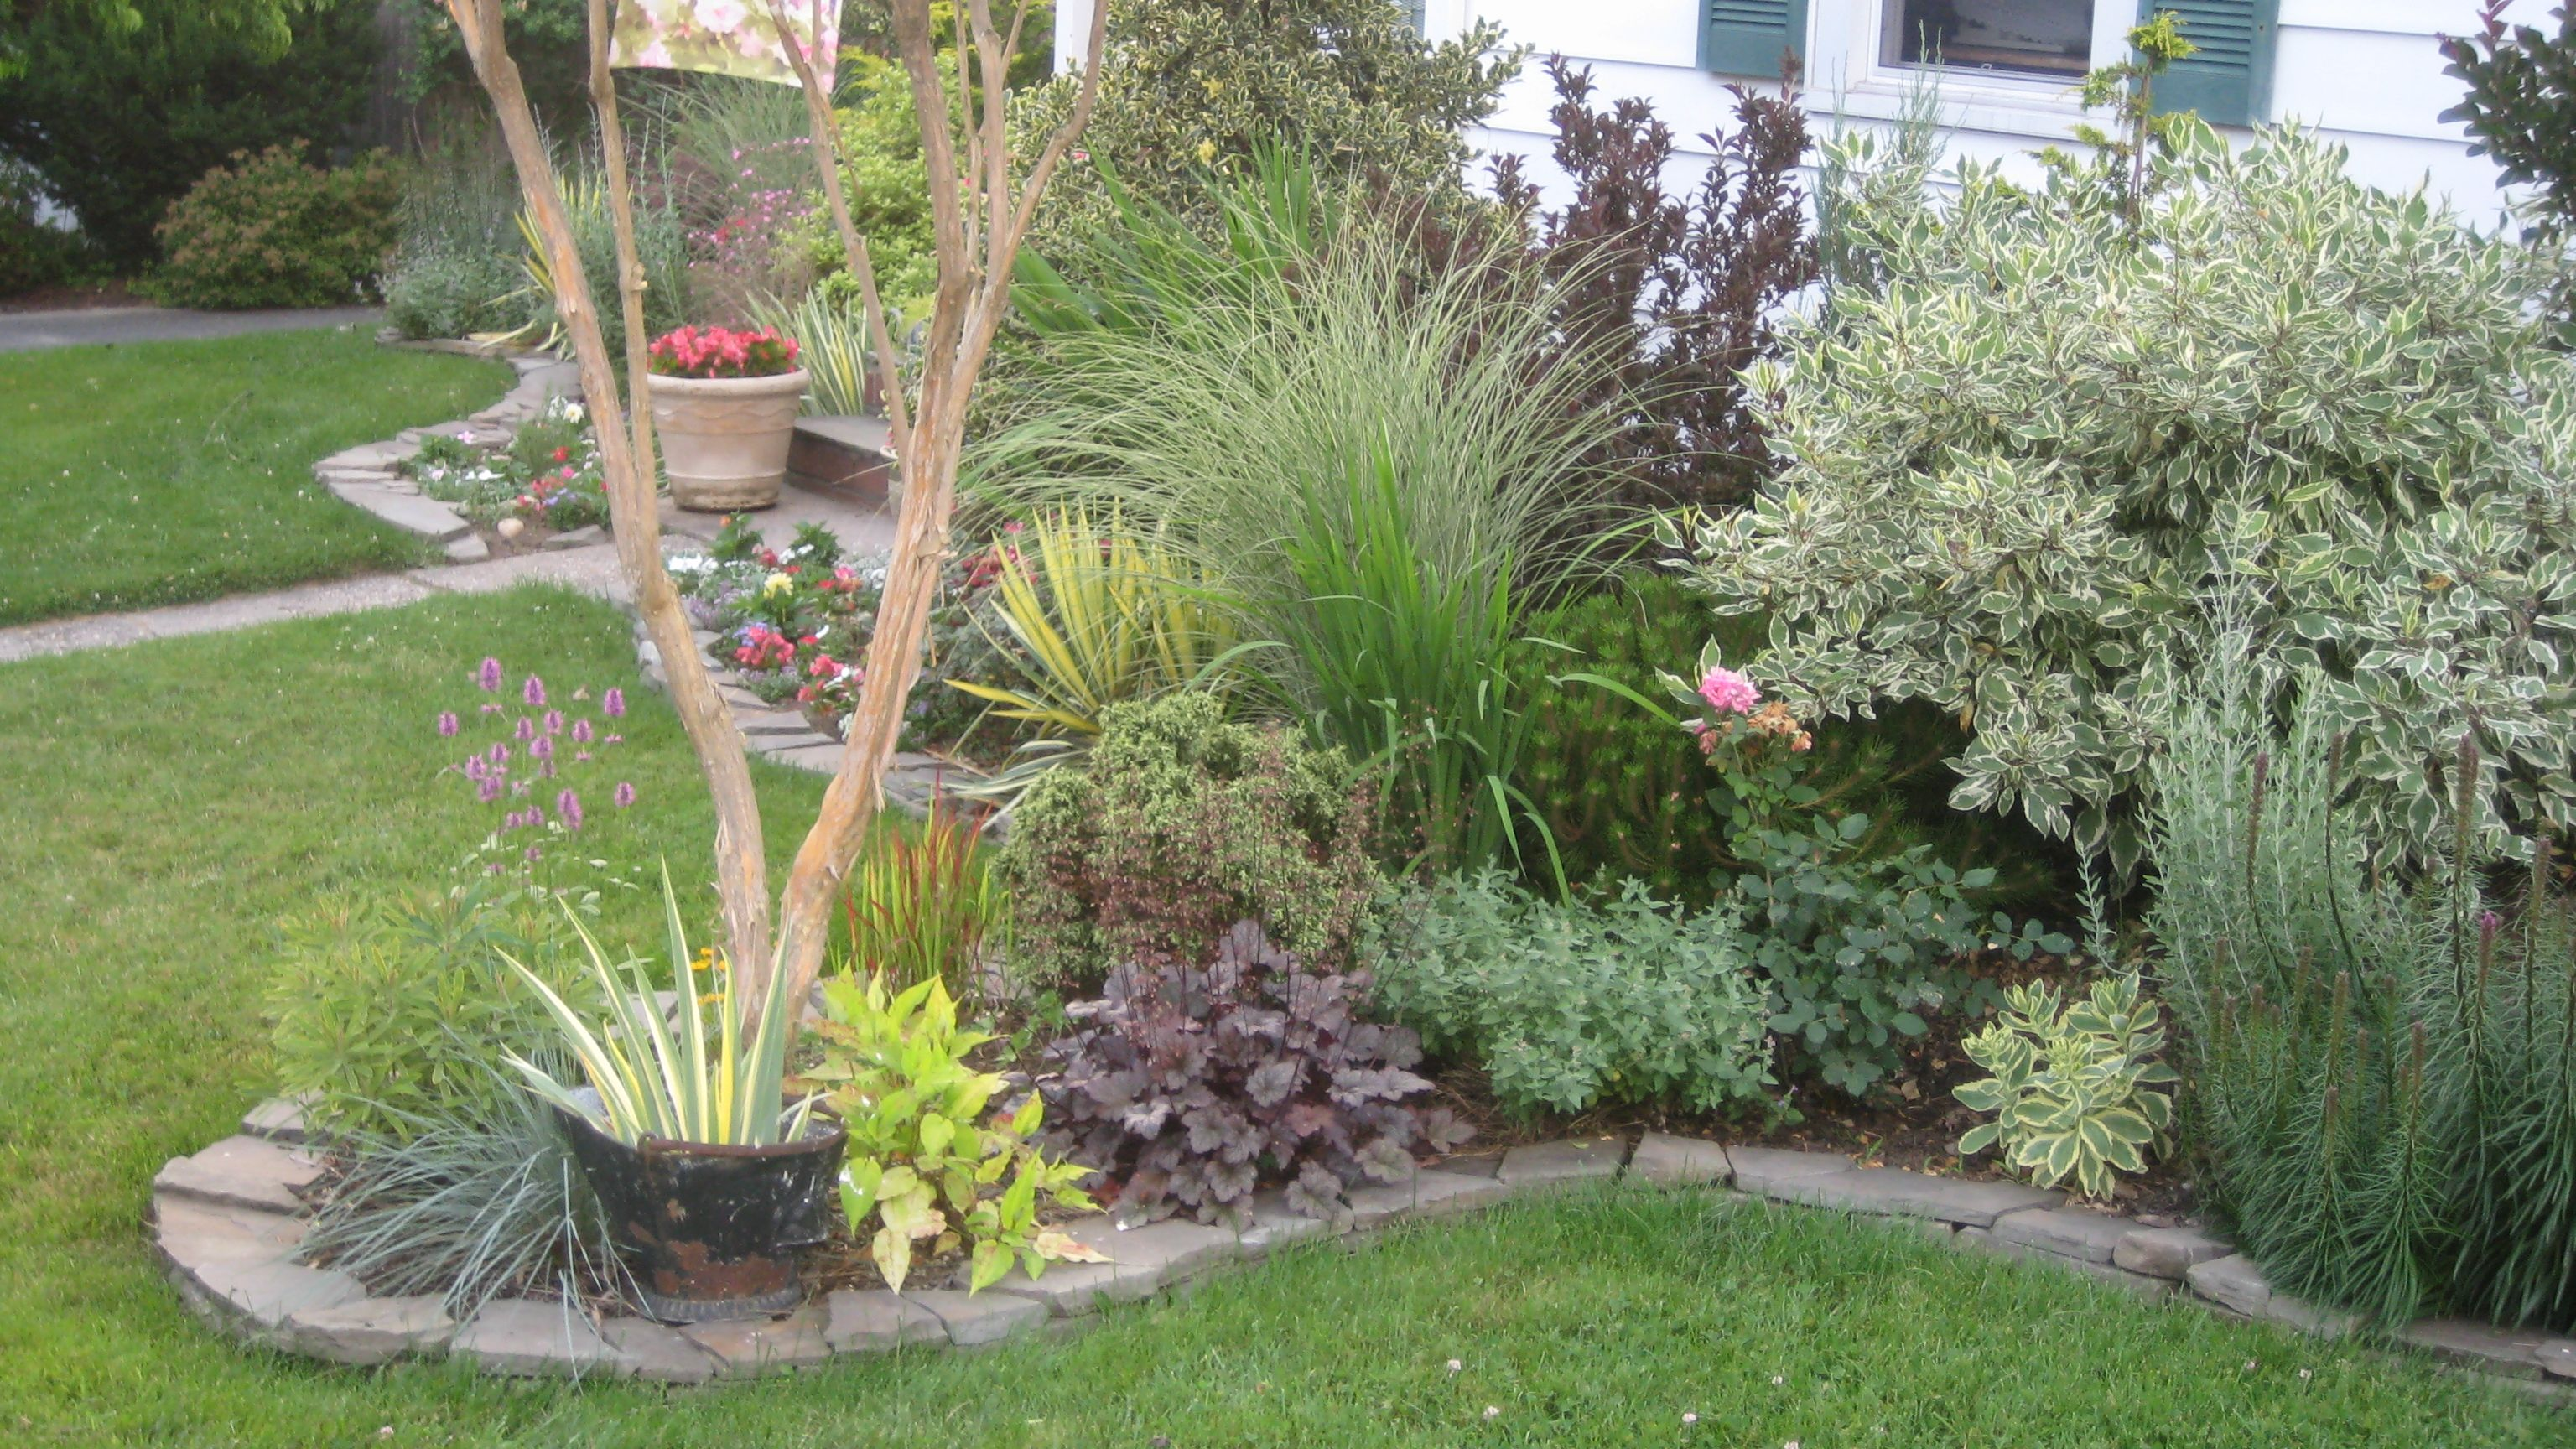 Dry stack stone wall edging garden design edging for Front yard edging ideas